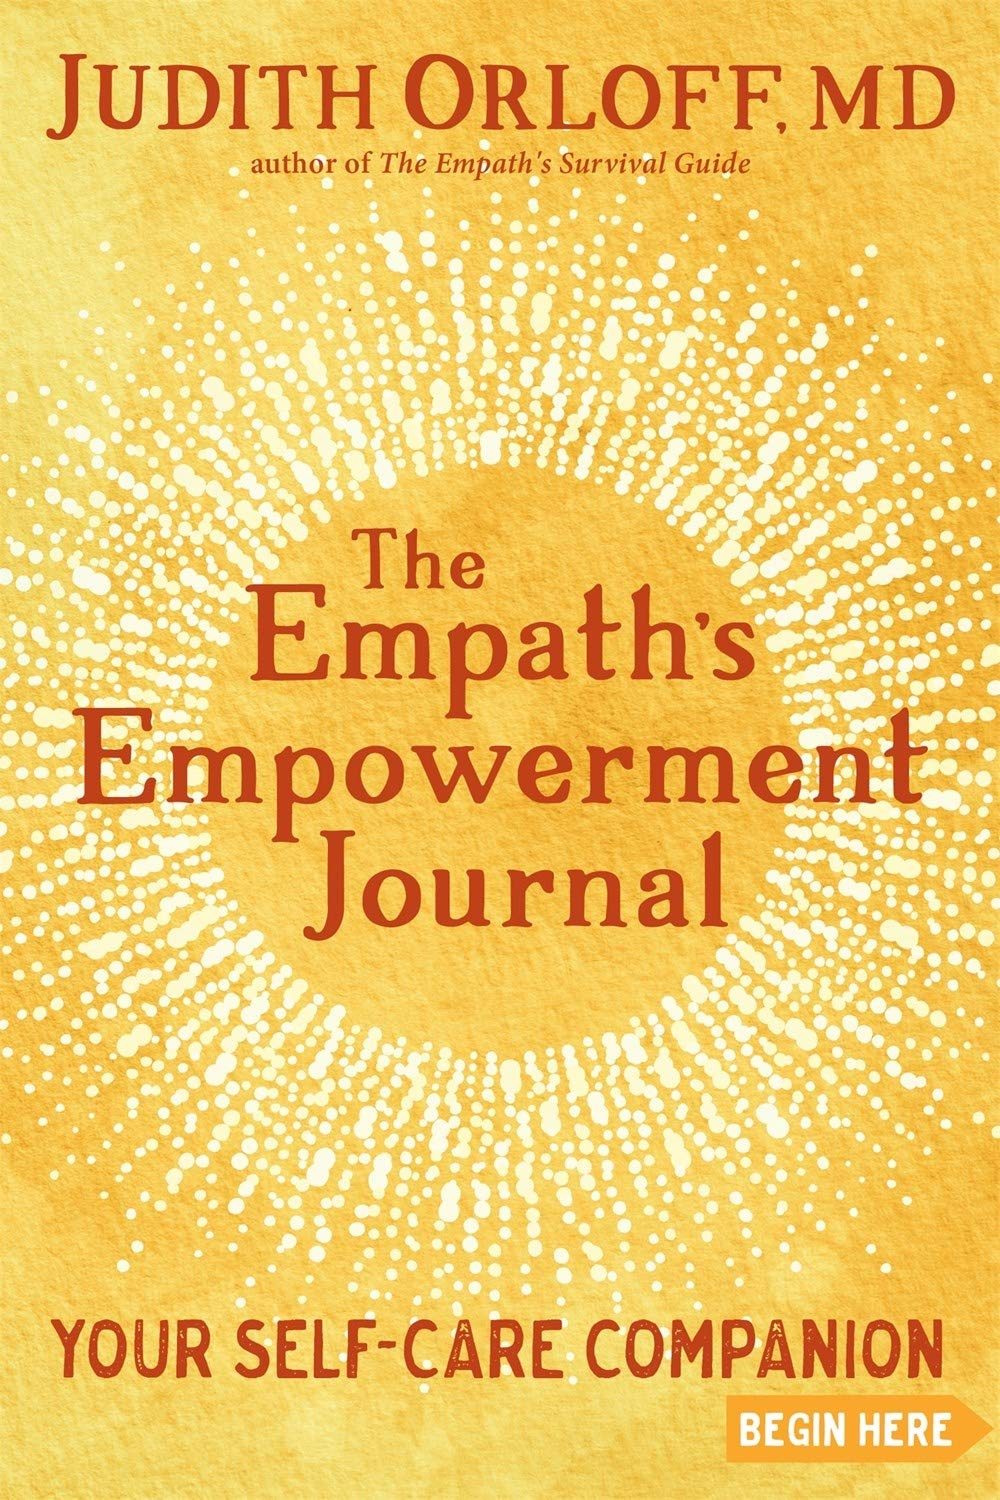 Empath's Empowerment Journal